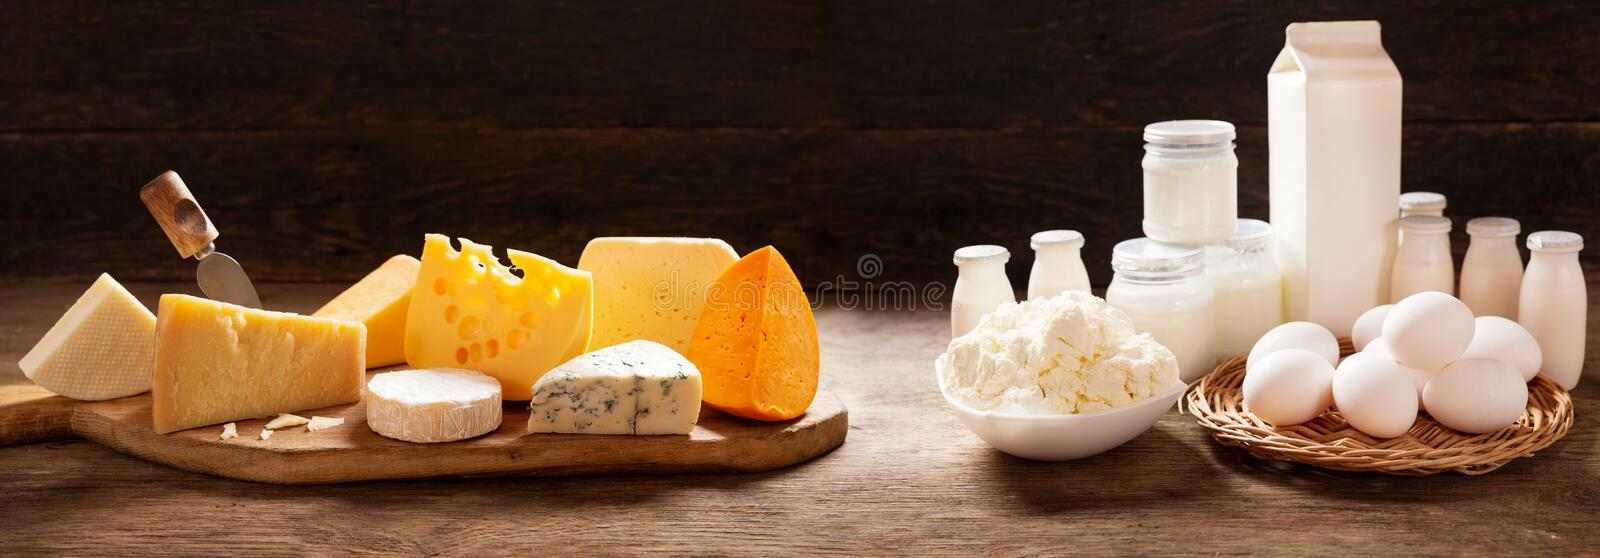 Various types of dairy products on rustic wooden table stock image